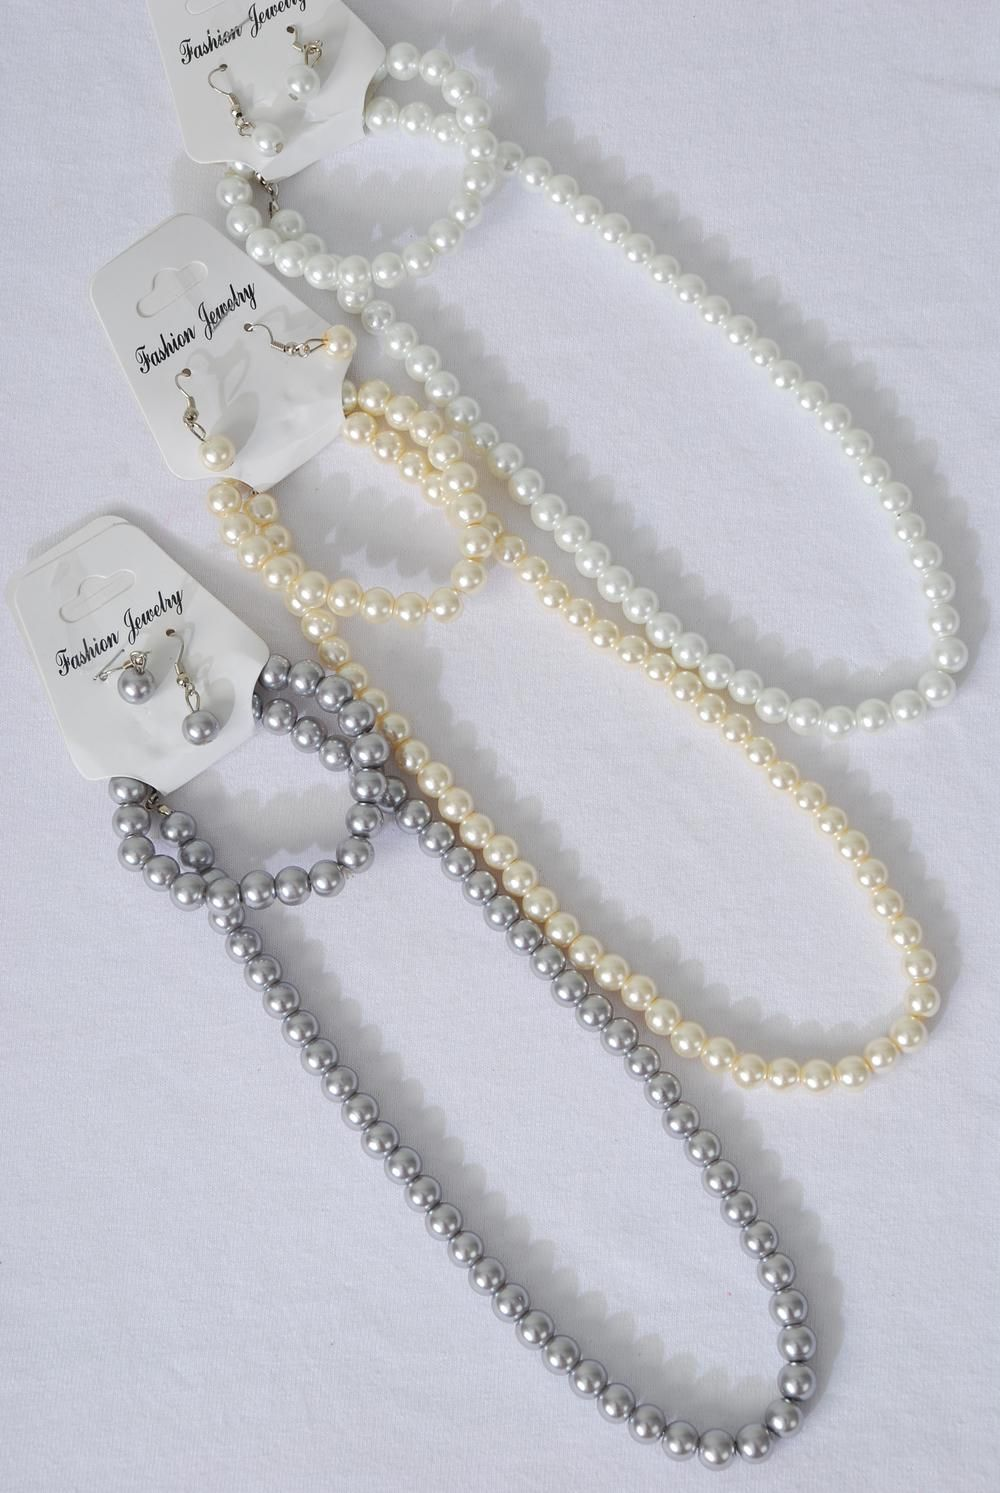 "Necklace Sets 3 pcs 8 mm Glass Pearls 18 inhn Long White Pearl/DZ 20"" Long,Bracelet is Stretch,4 White,4 Cream,4 Gray Pearl Mix,Hang Tag & opp bag & UPC Code -"